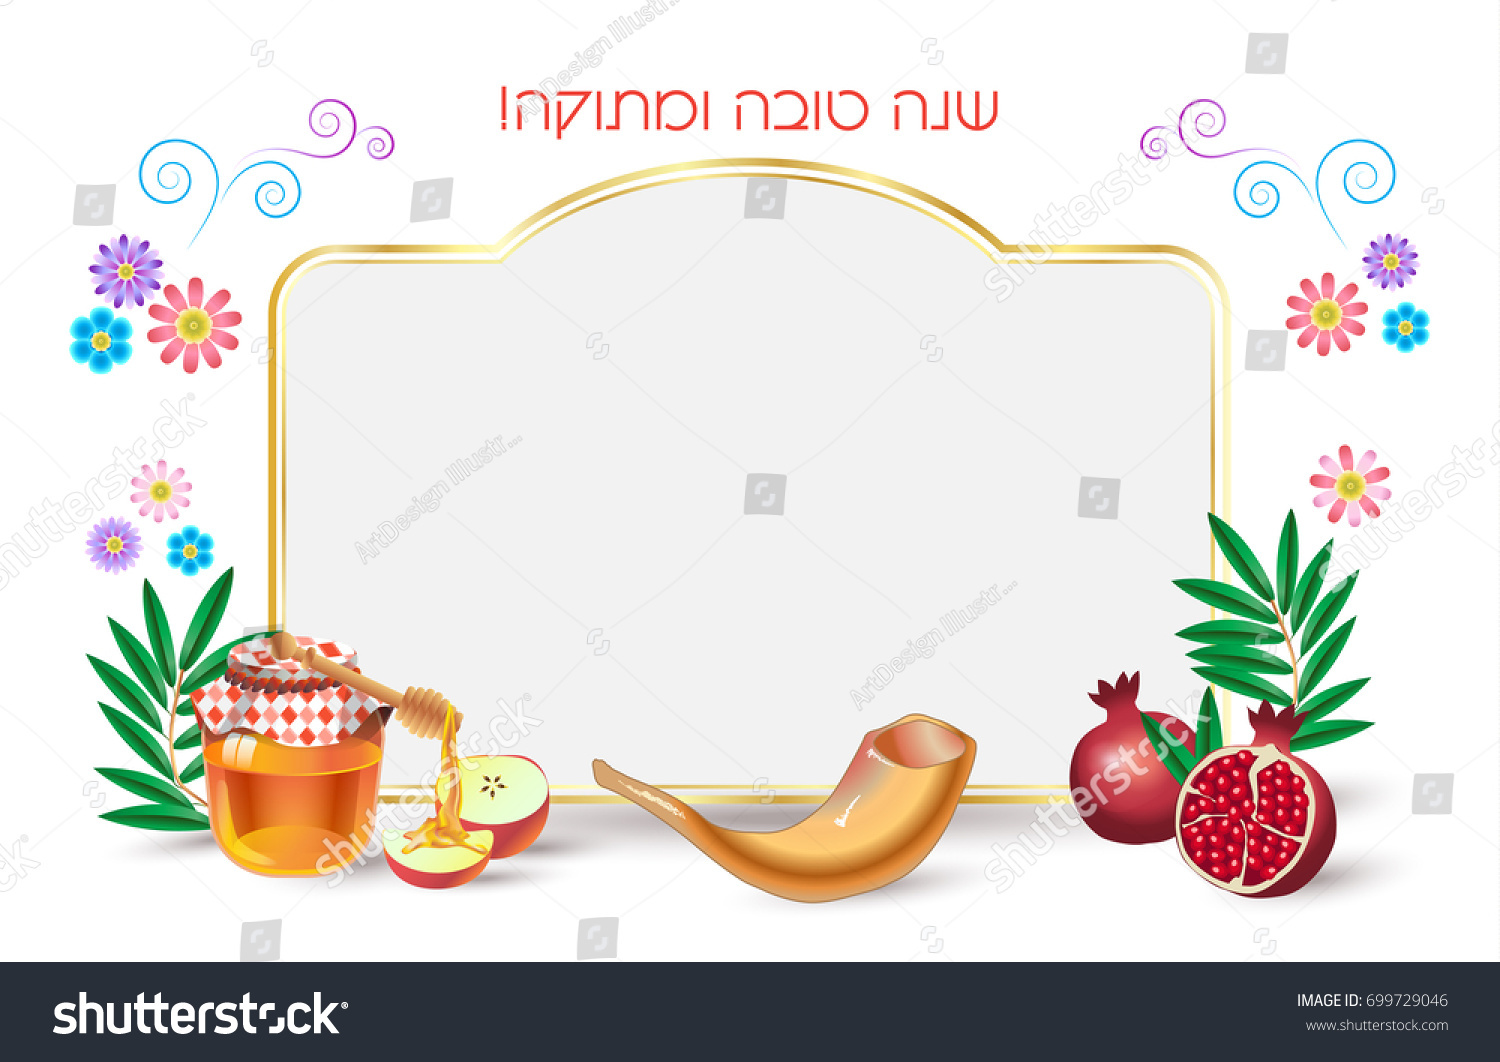 Rosh hashanah card happy jewish new stock vector 699729046 rosh hashanah card happy jewish new year greeting text shana tova on kristyandbryce Choice Image